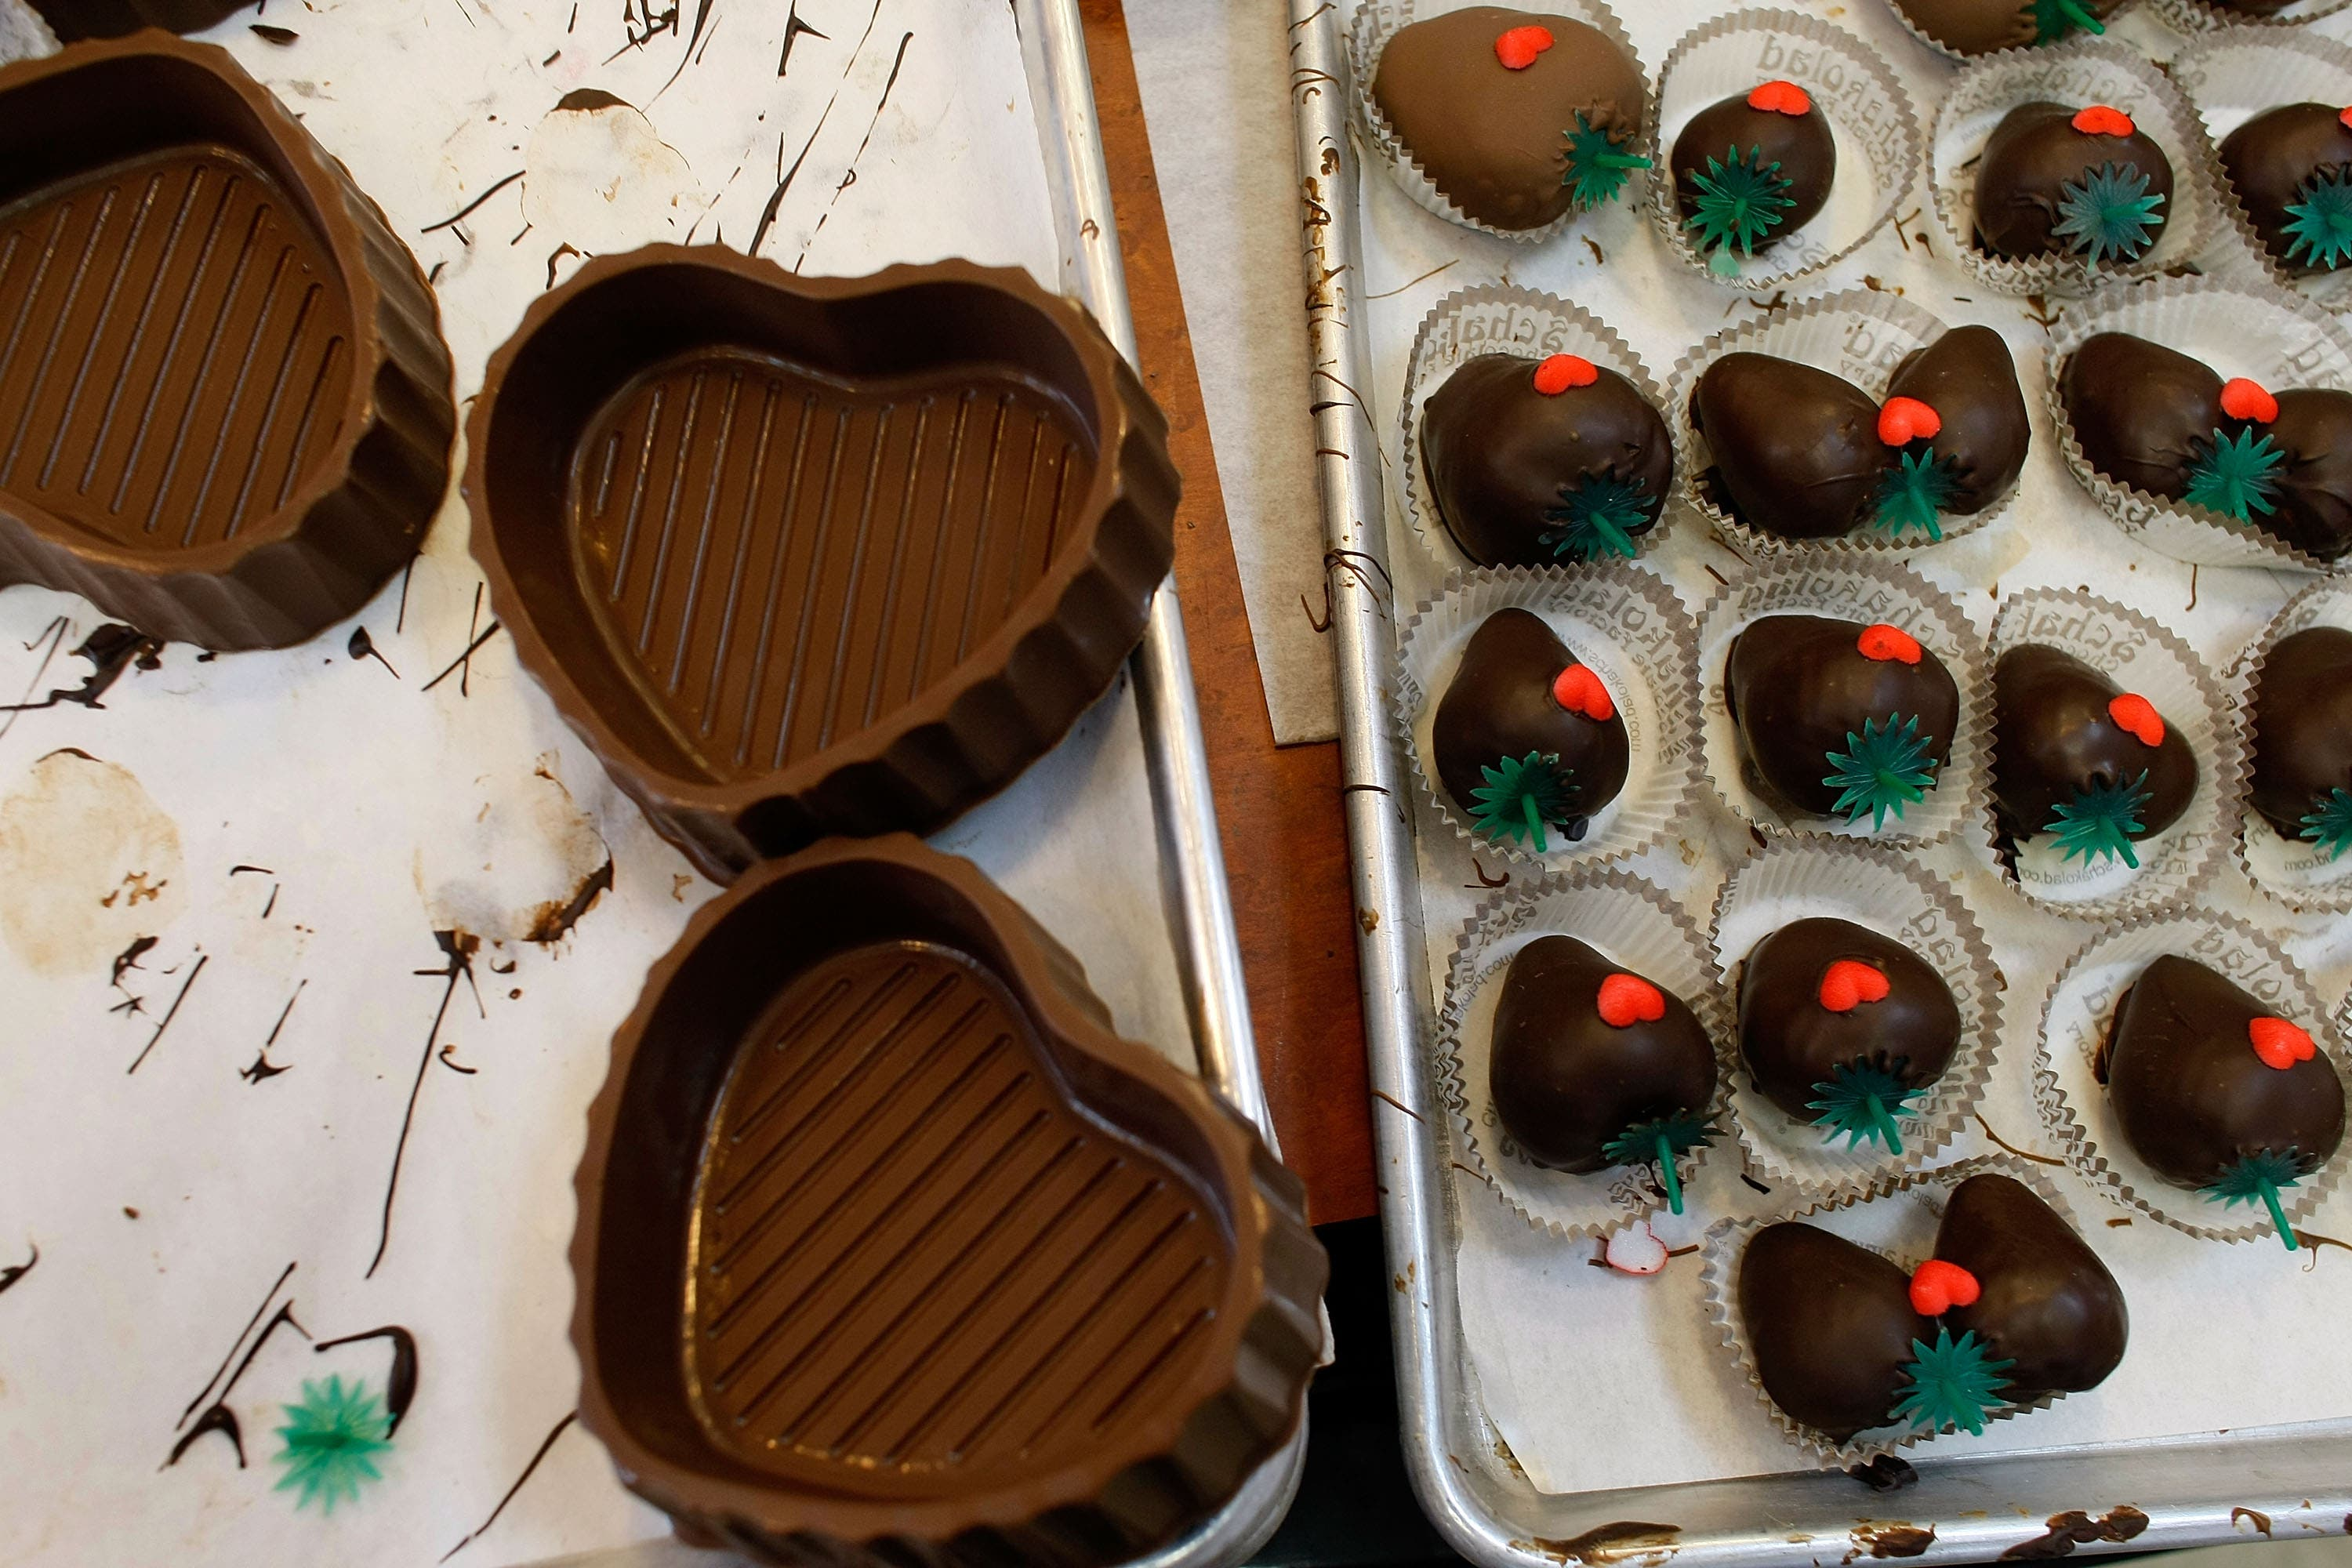 True, chocolate is the way to many a woman's heart, but it seems women now expect more creativity.